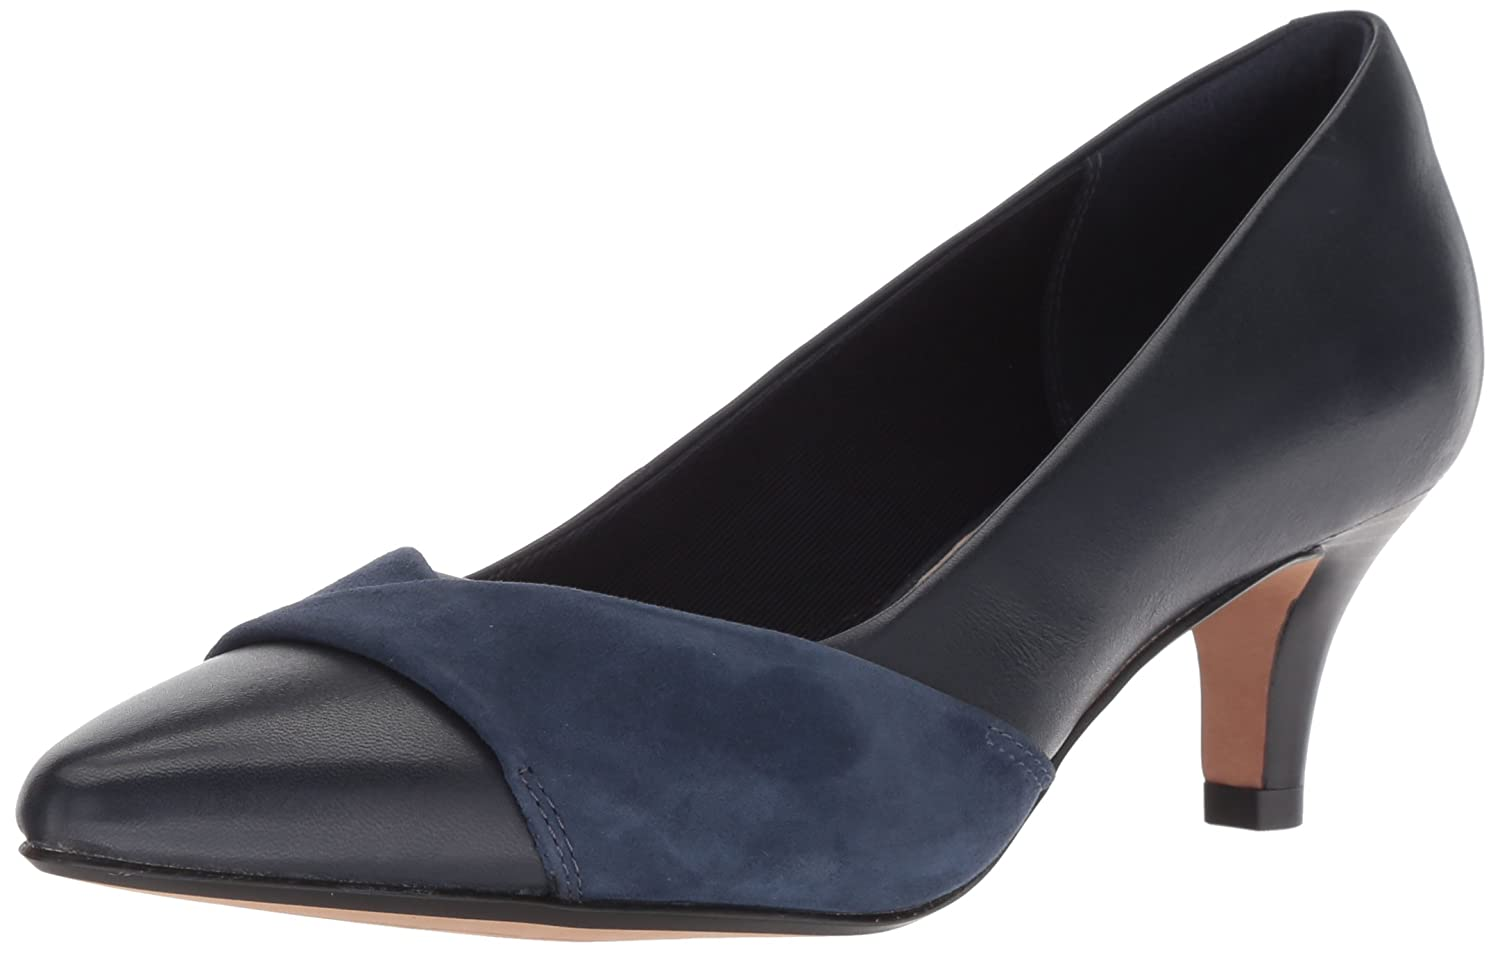 CLARKS Women's Linvale Vena Pump B077YBMN23 070 M US|Navy Leather/Nubuck Combi